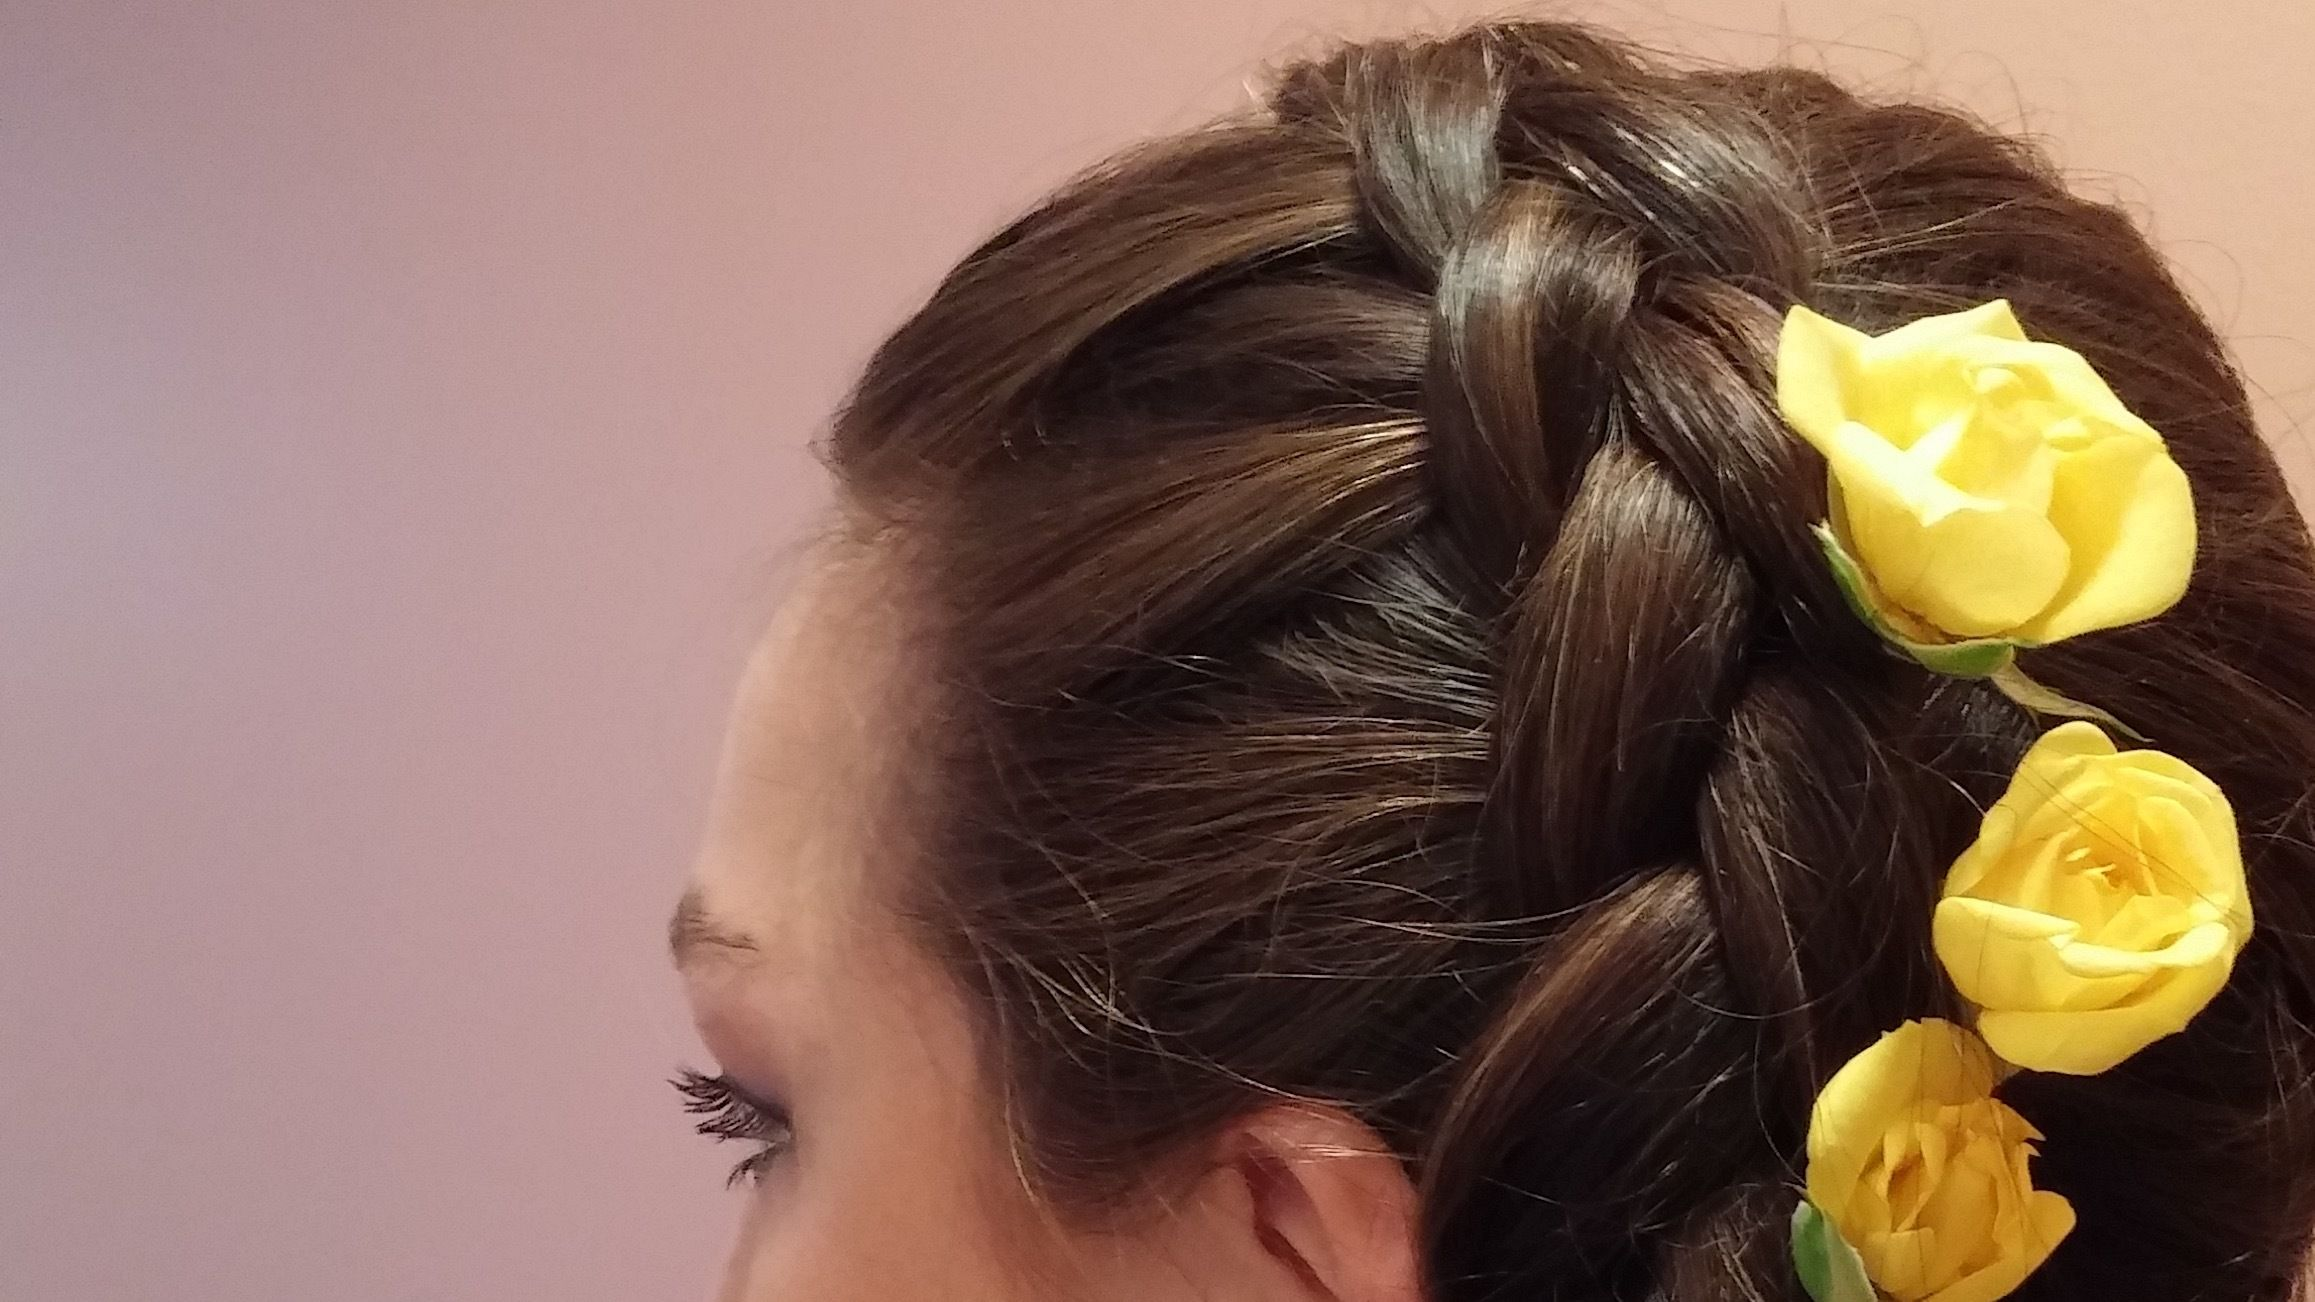 Hairstyling - learn to do your own hair!